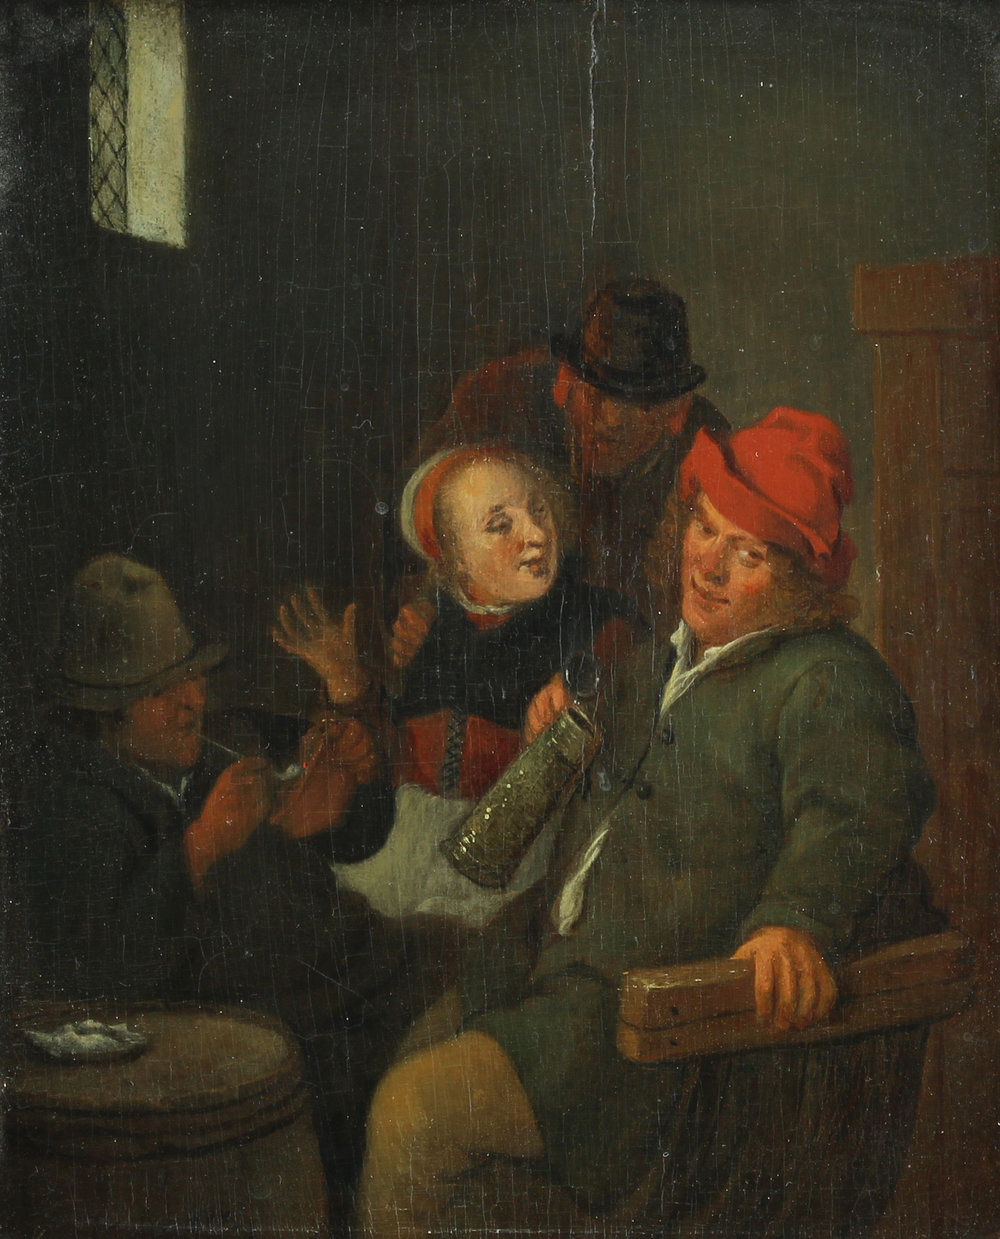 Jan Miense Molenaer (Dutch c.1610-1668) 'A Tavern Scene'